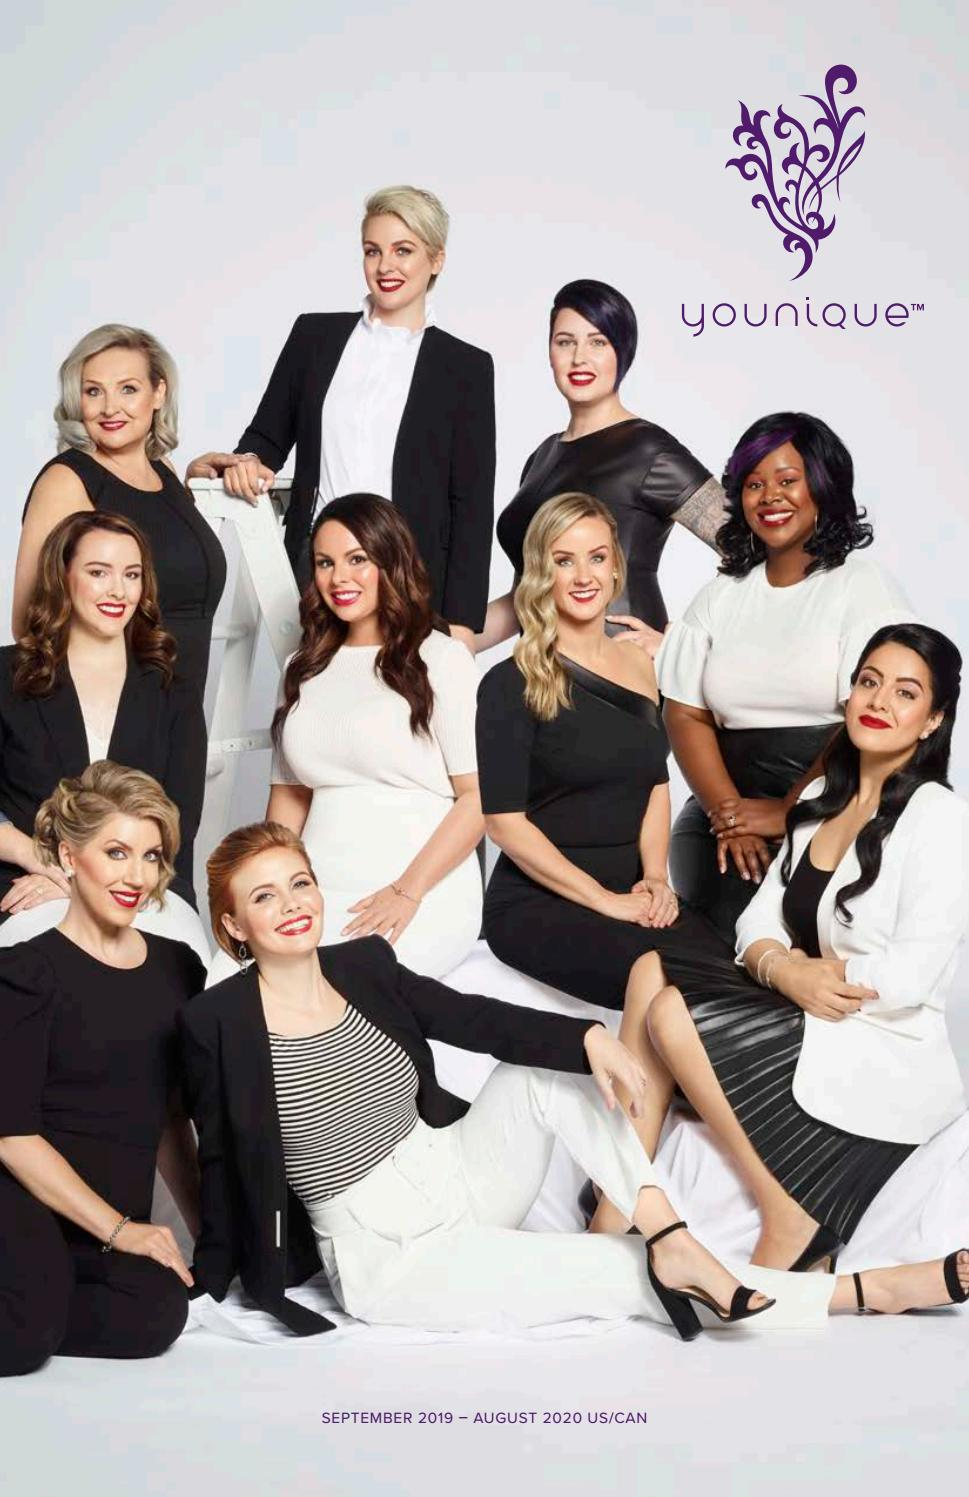 Younique Catalog 2019 By Melissa Seyba Thirty One Independent Senior Consultant Issuu